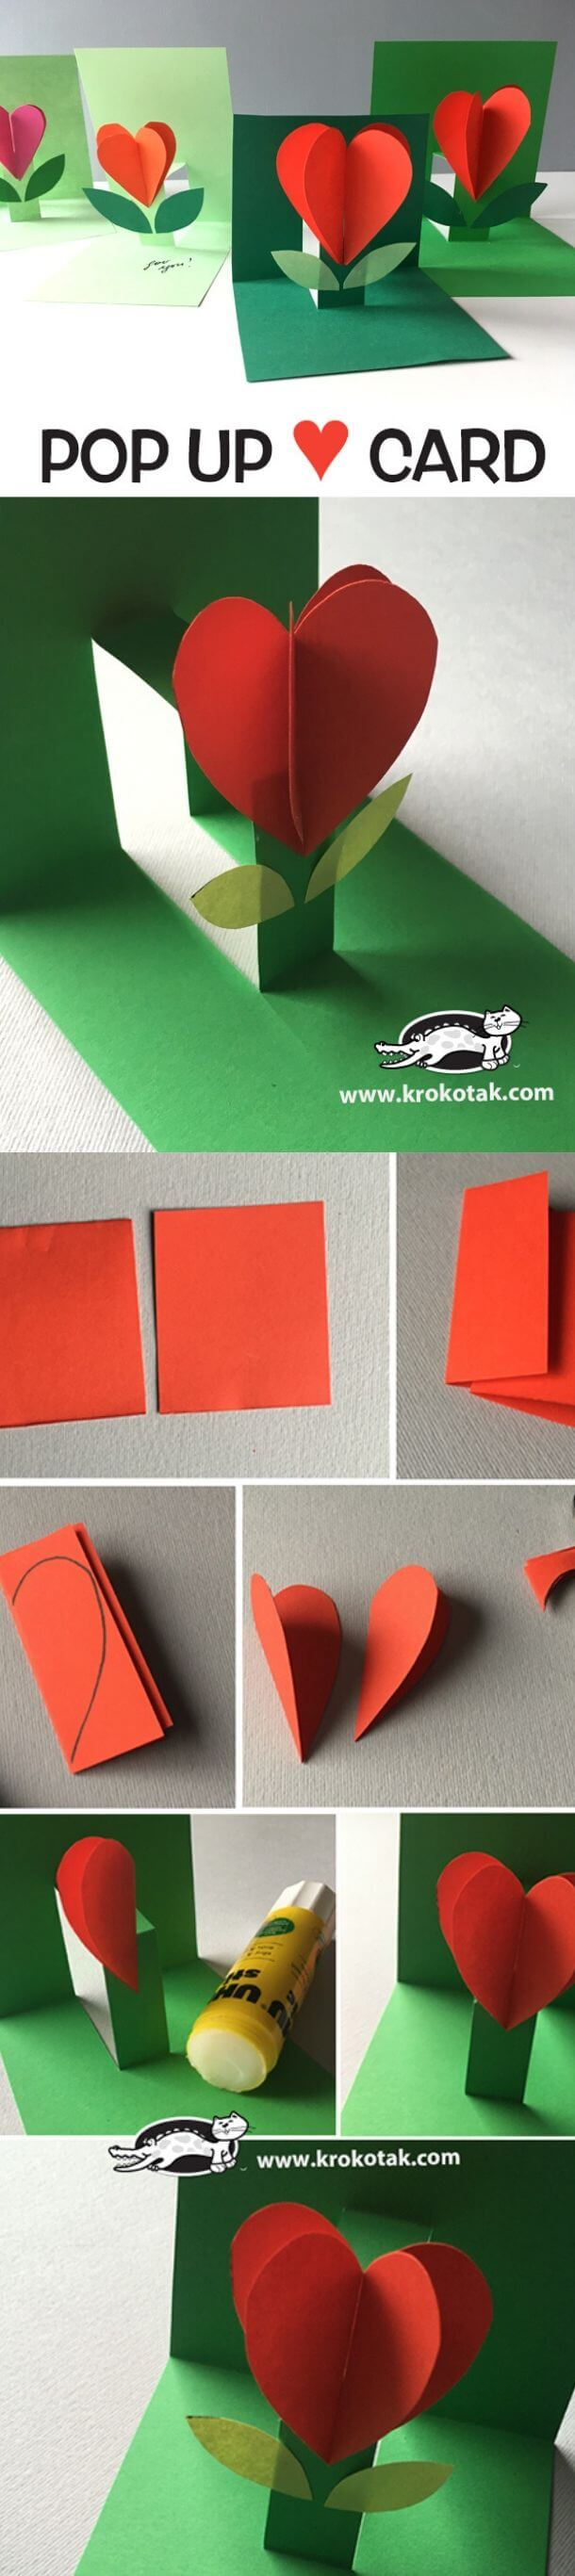 Popup heart cards | Heart-Shaped Crafts For Valentine's Day